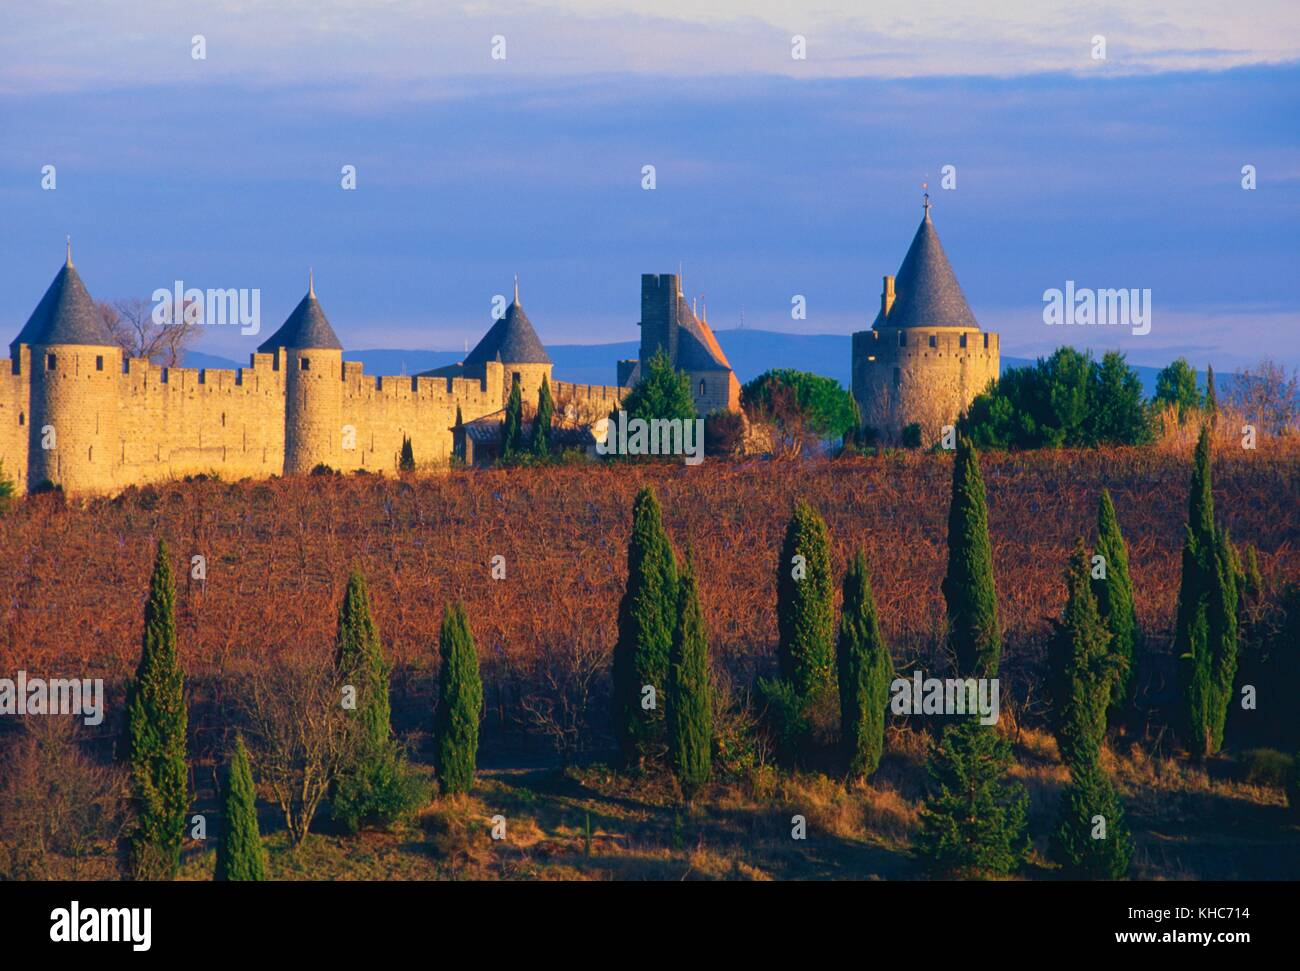 Carcassone, walls, fortifications, watchtowers, castle, city, vineyard, common grape vine, wine making, Cypresses, Stock Photo